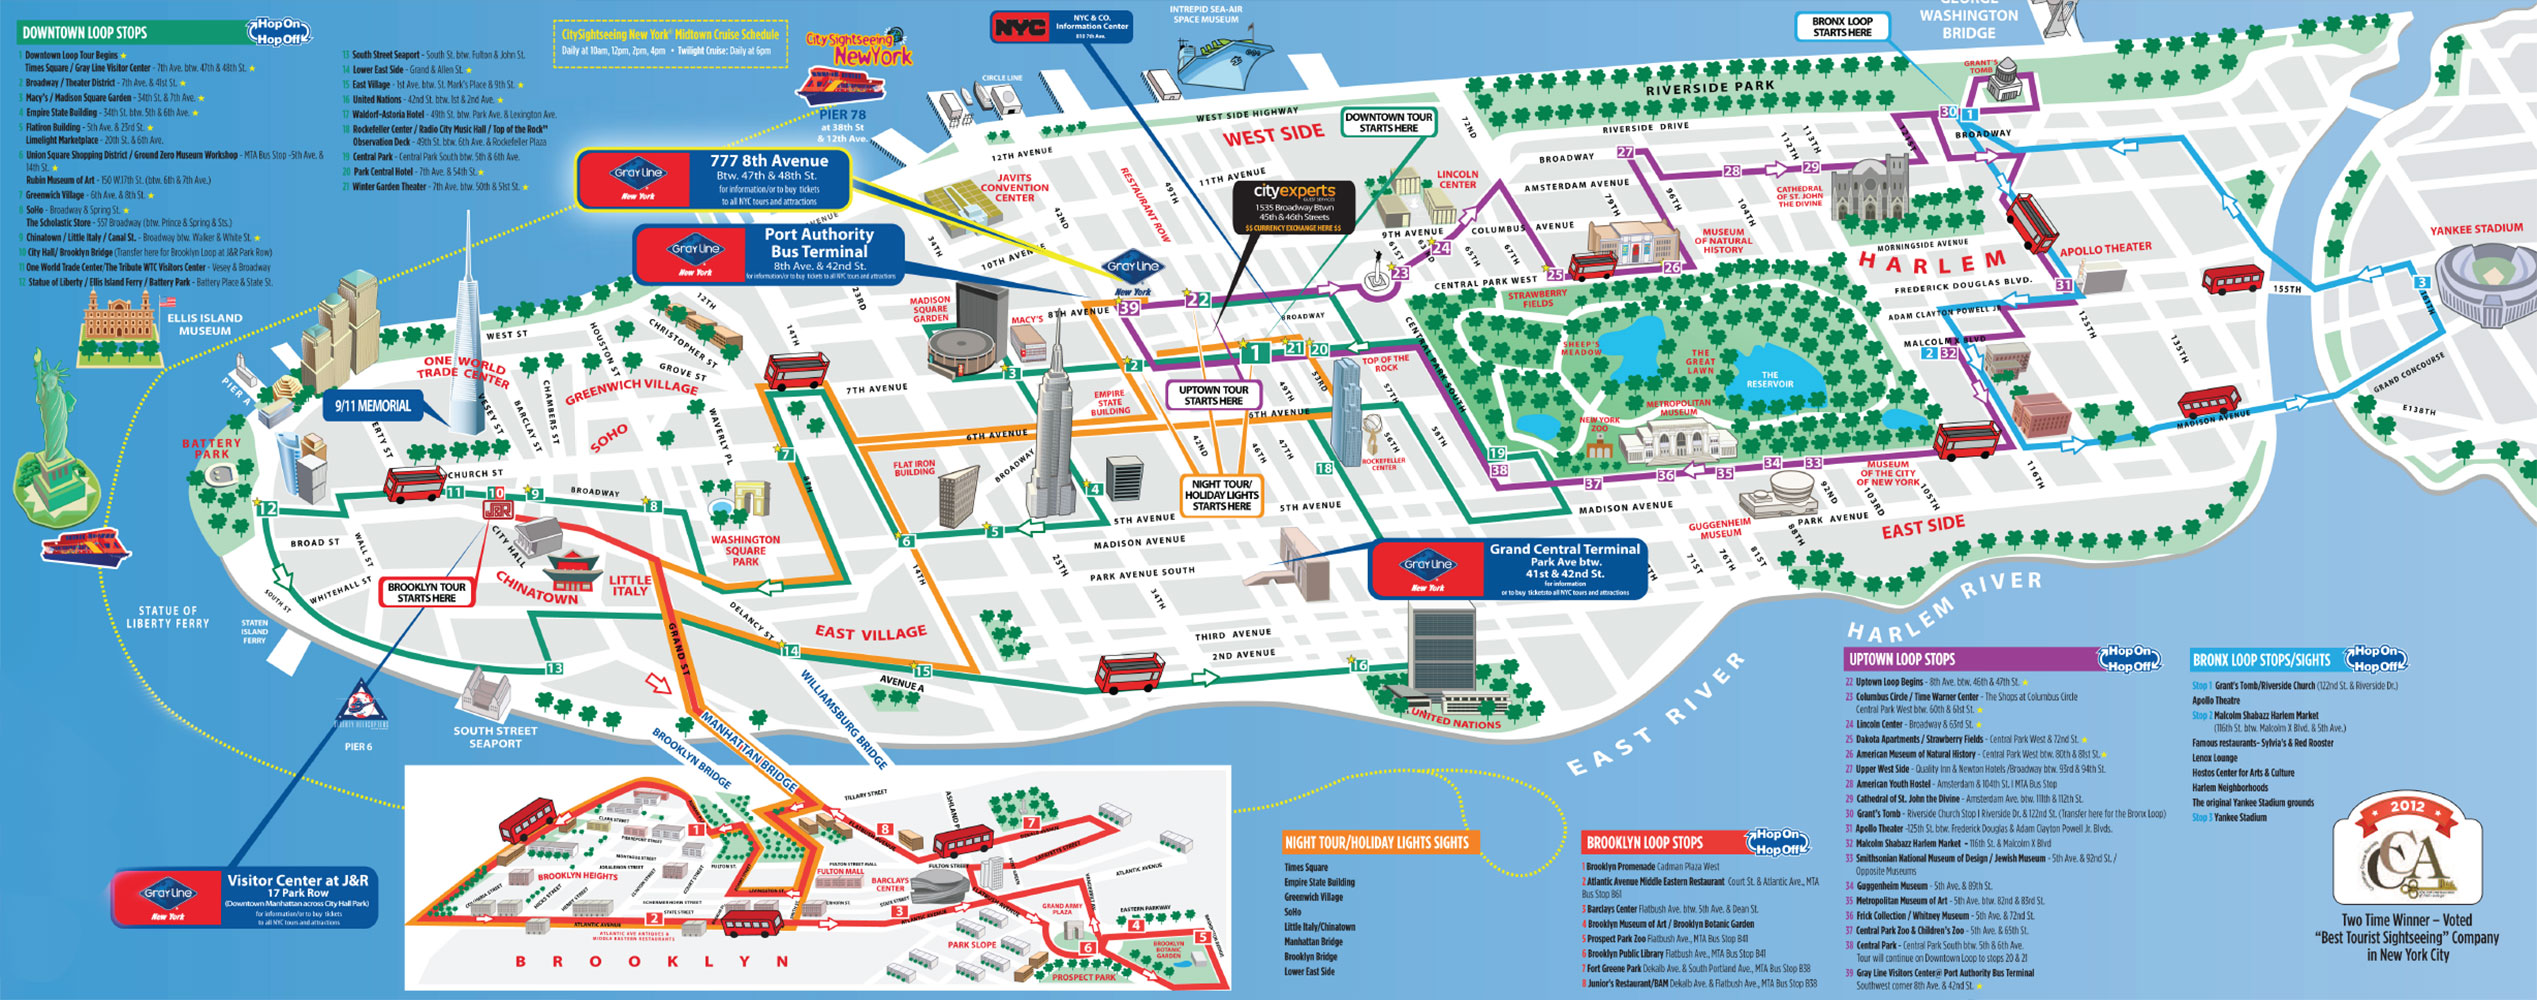 Tourist Attractions In New York Map New York Tourist Attractions – Nyc Tourist Map Printable